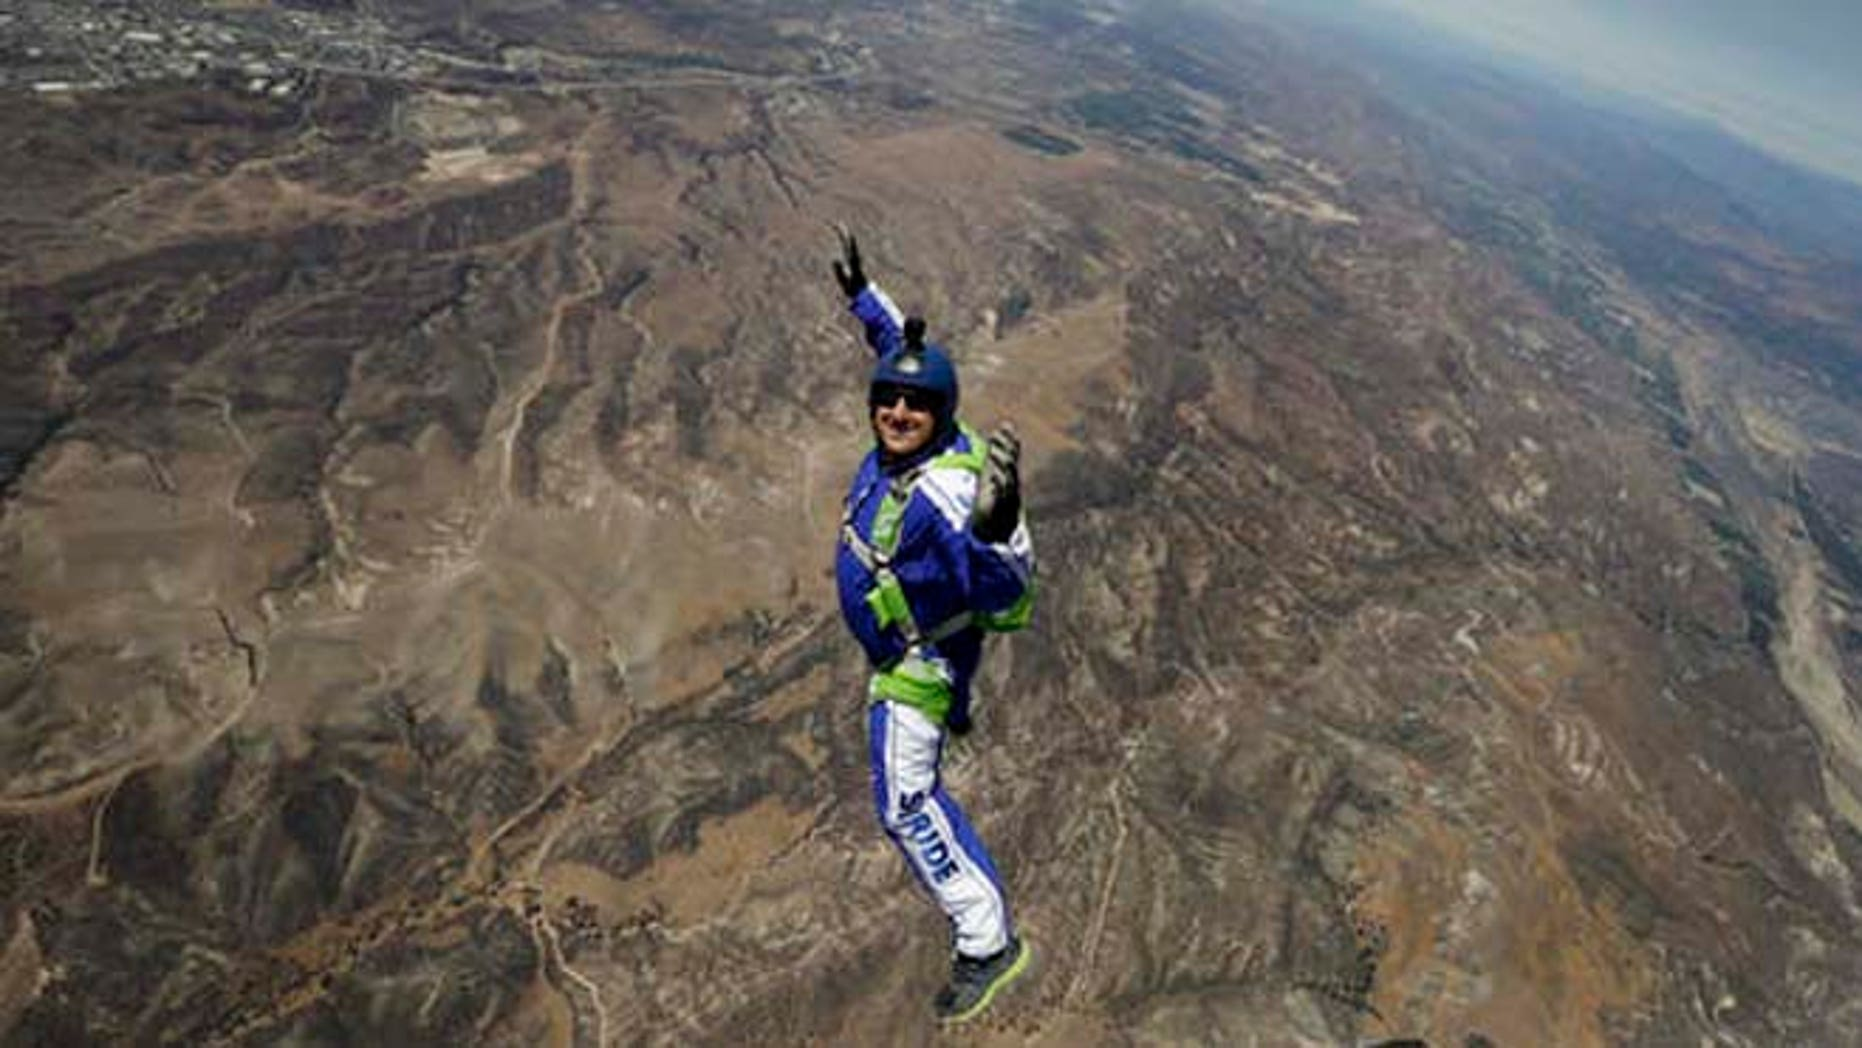 Skydiver Luke Aikins smiles as he jumps from a helicopter during his training in Simi Valley, Calif.  (AP Photo/Jae C. Hong)